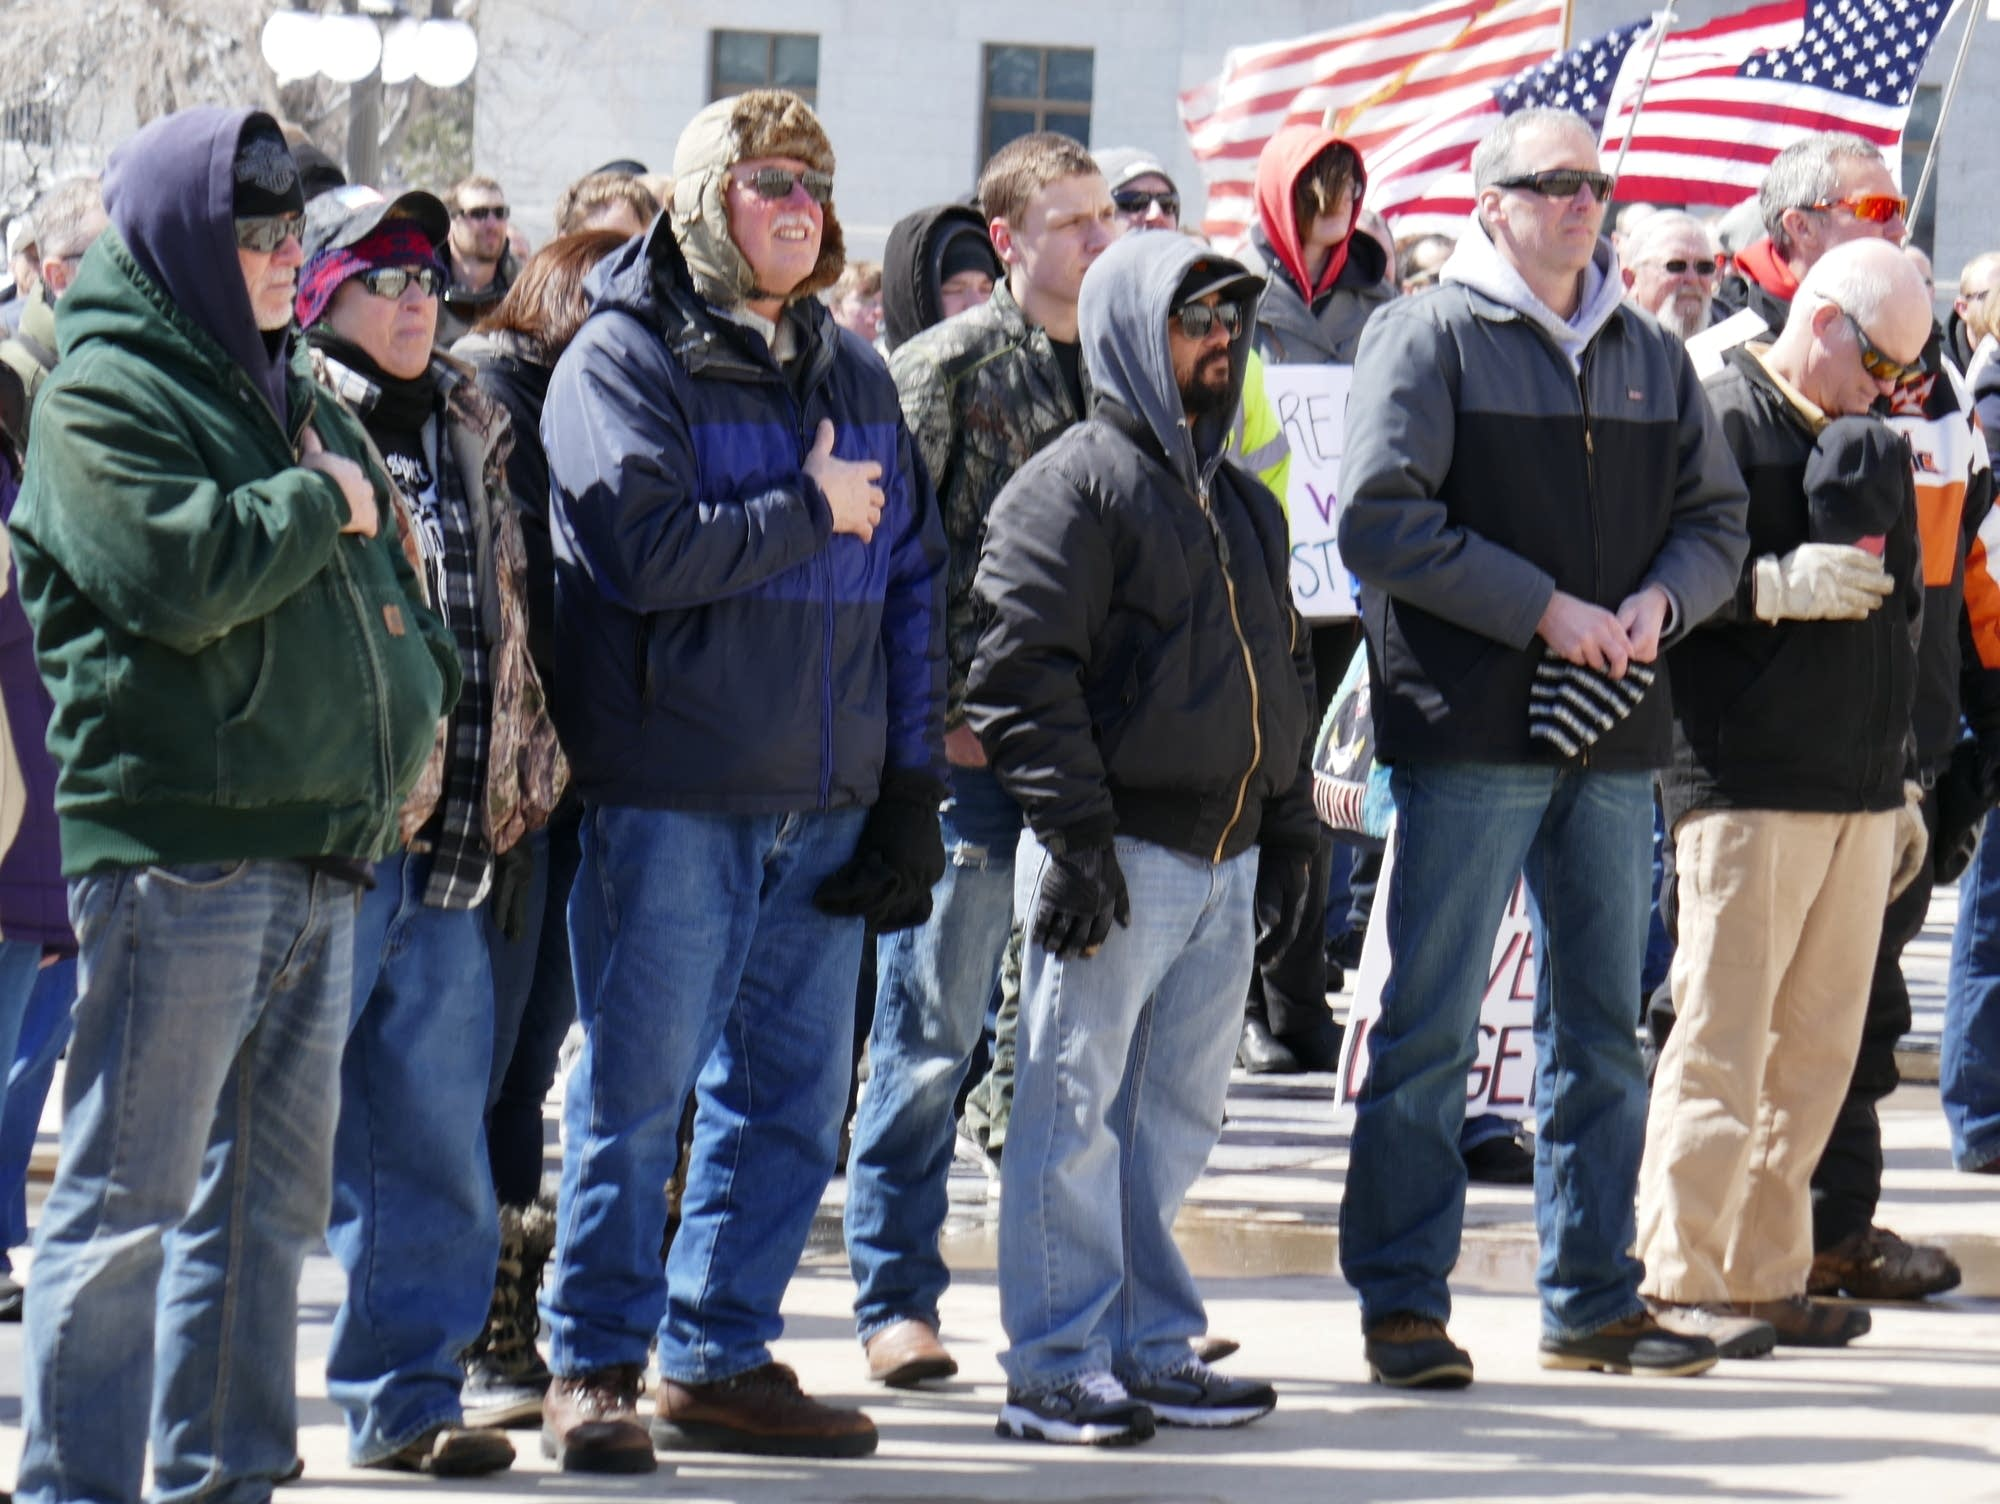 Gun rights protesters gather at the Minnesota Capitol